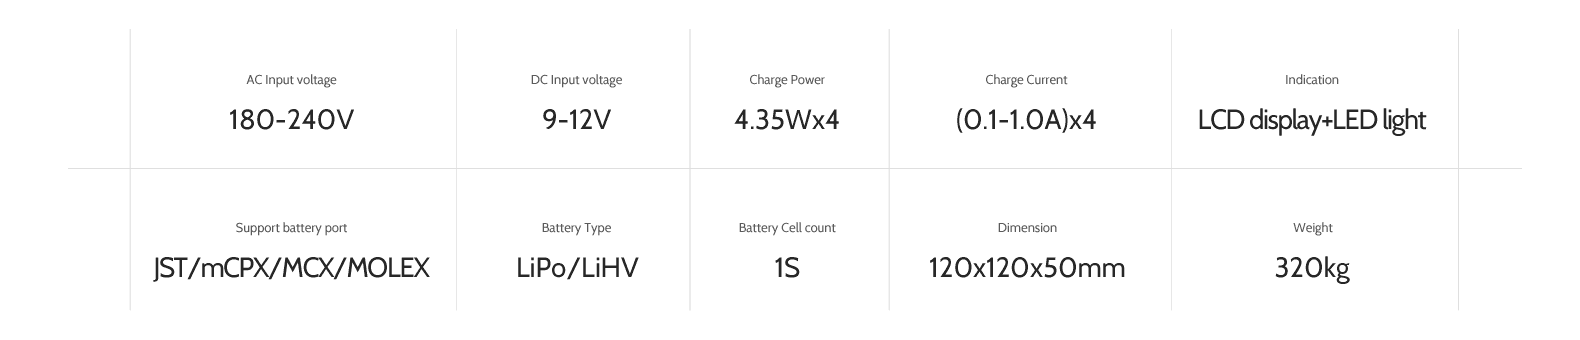 ev-peak e6 4 channels intelligent fast charger specifications